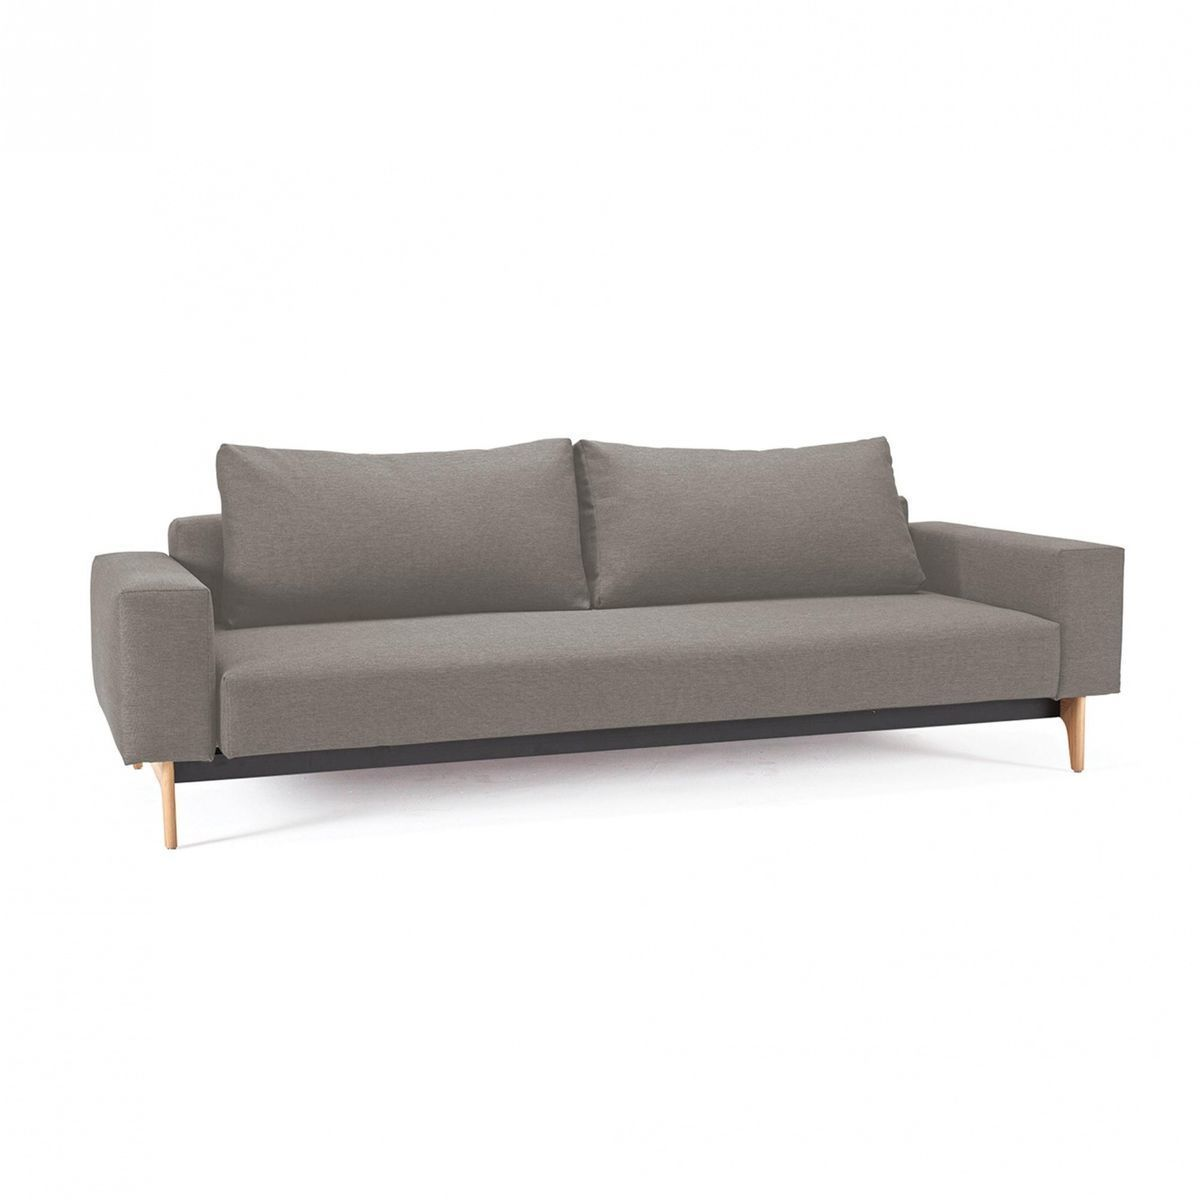 Designer couch stoff  Idun Sofa Bed | Innovation | AmbienteDirect.com